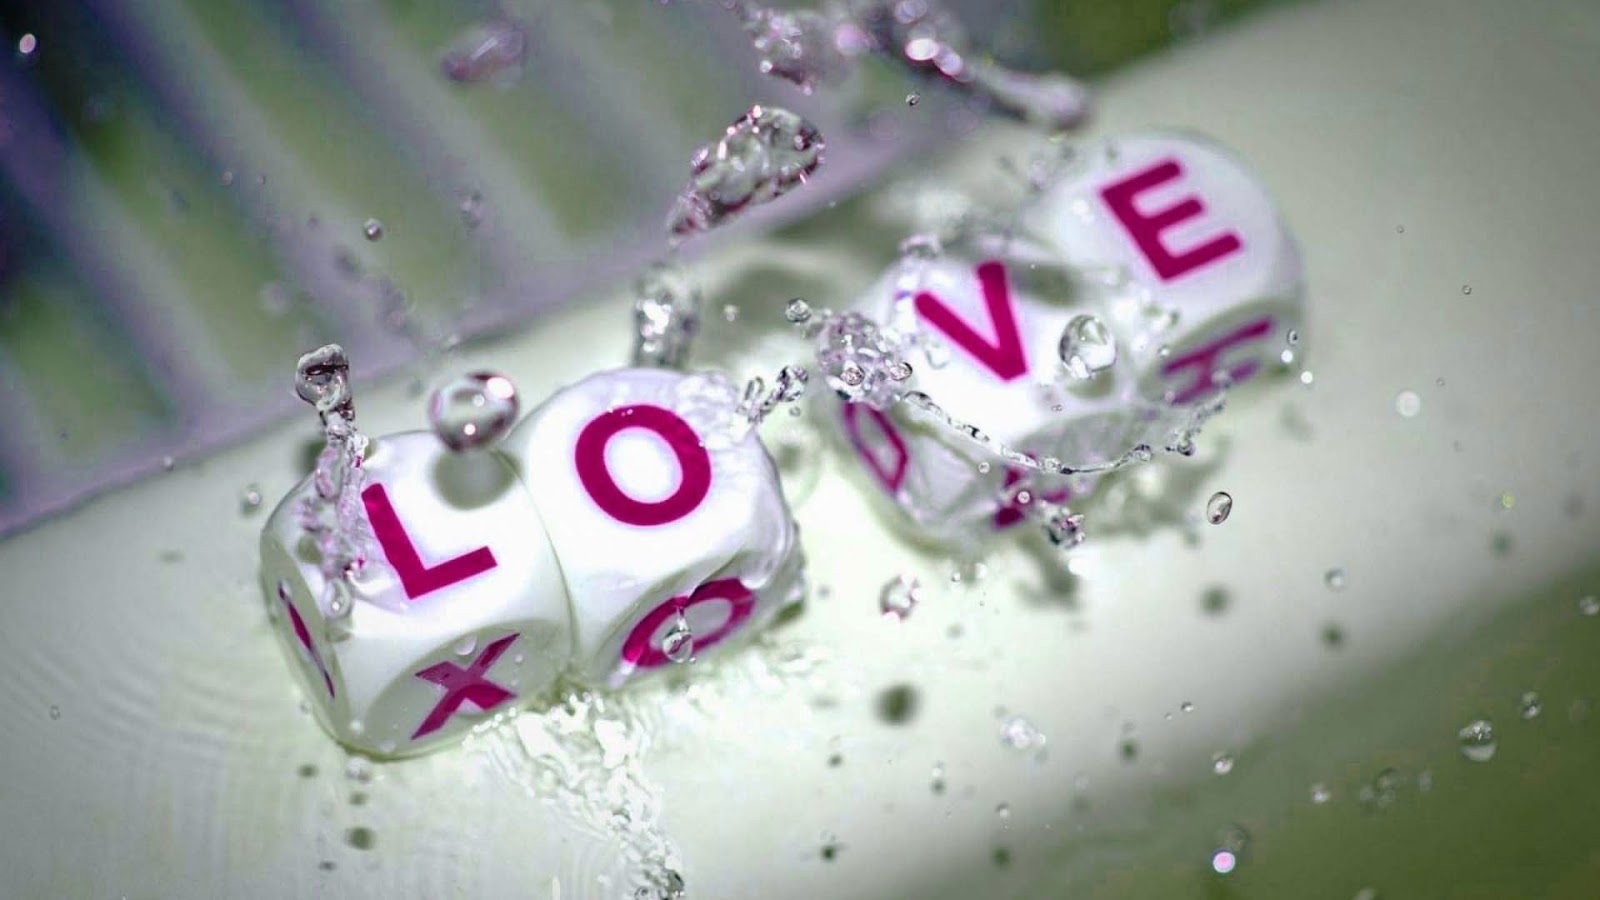 love_hd_wallpaper-in-purple-white-color